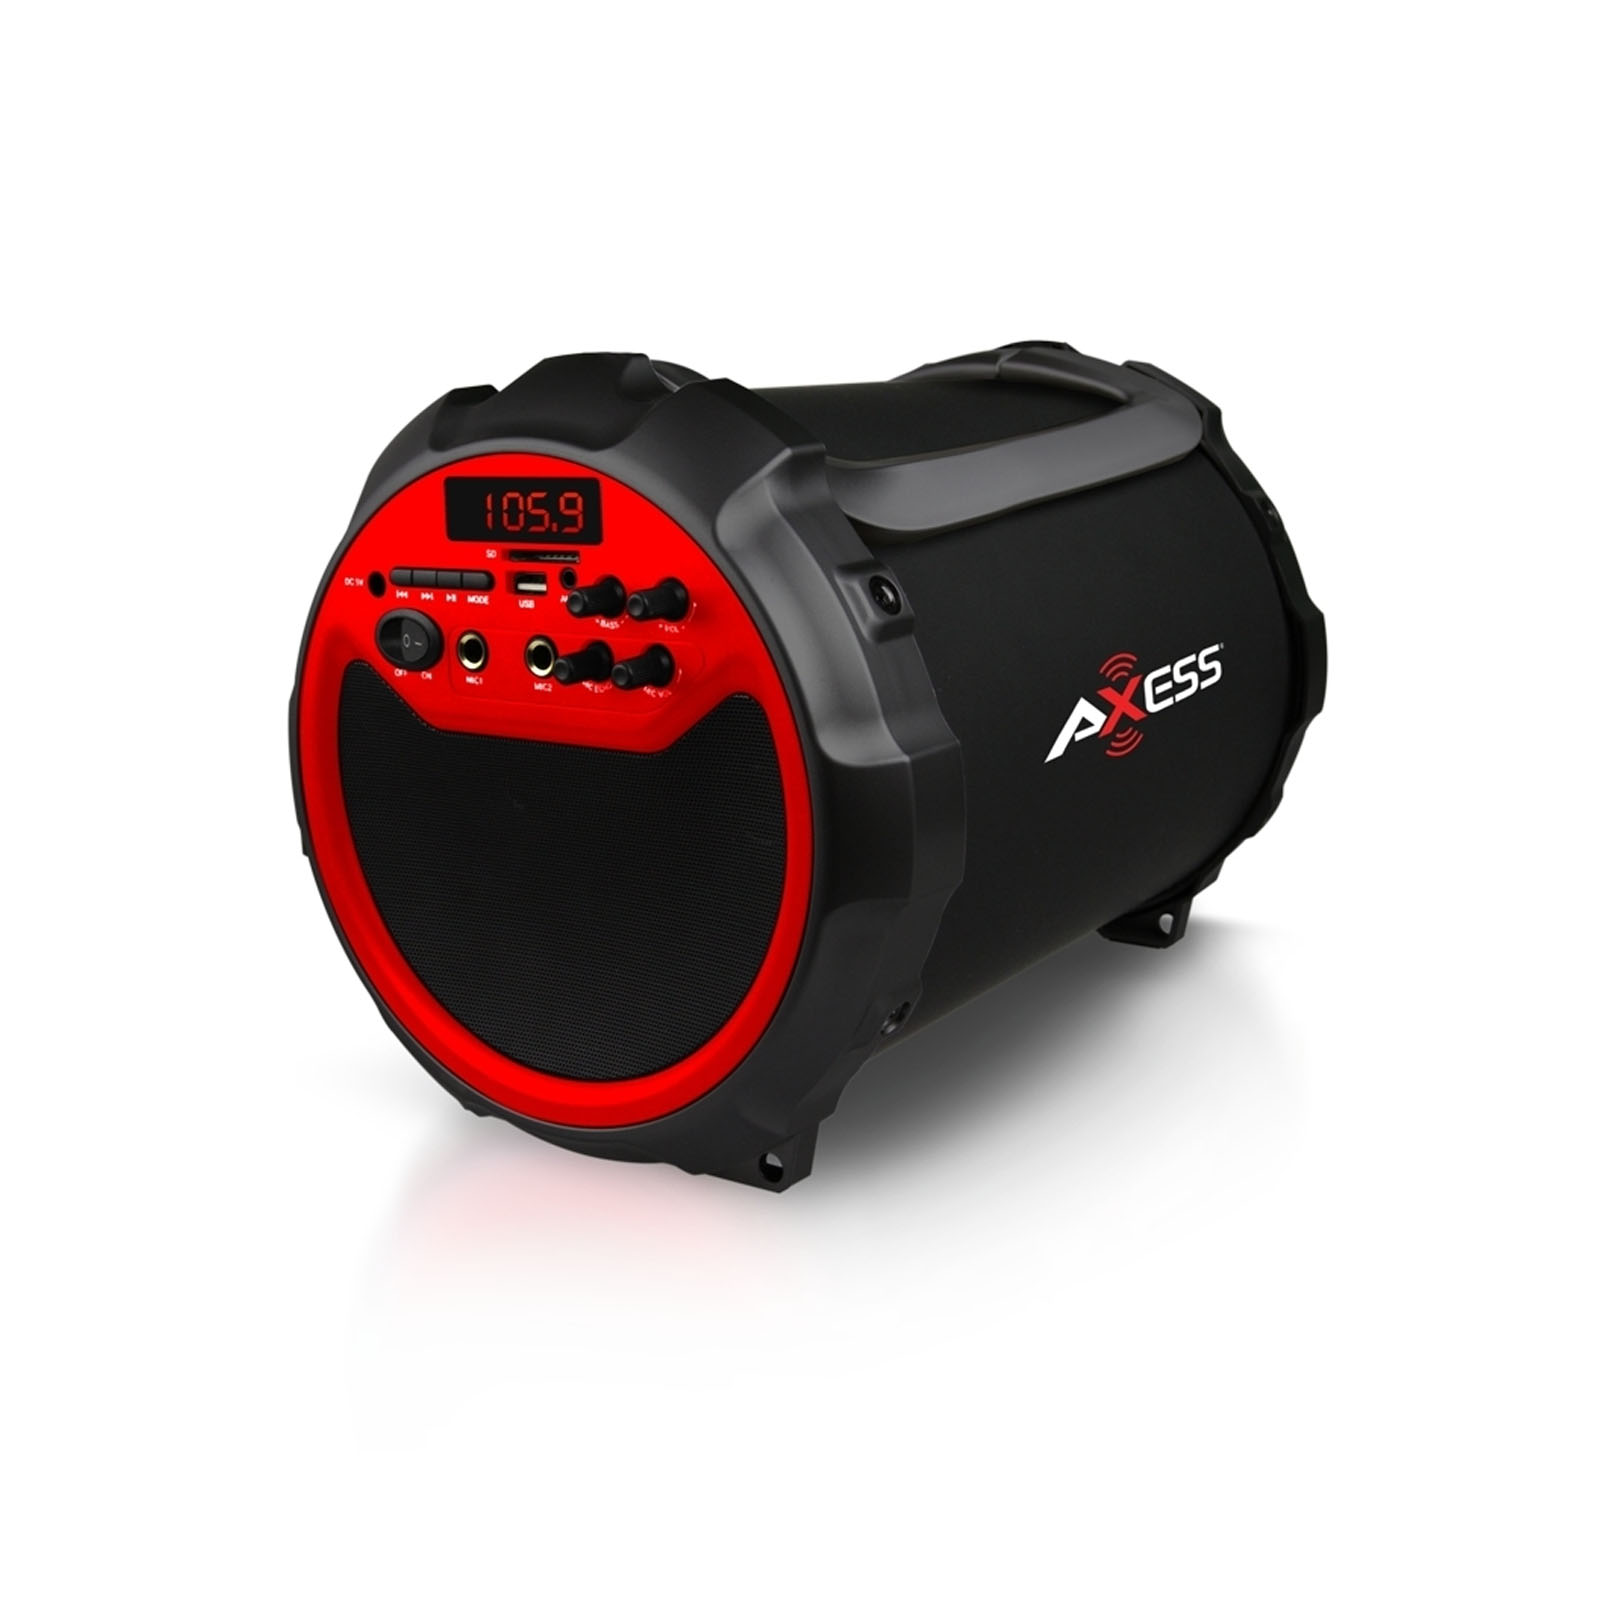 Axess Red Portable Indoor/ Outdoor BT Cylinder 2.1 Speaker with 6-inch Subwoofer and 3-inch Horn